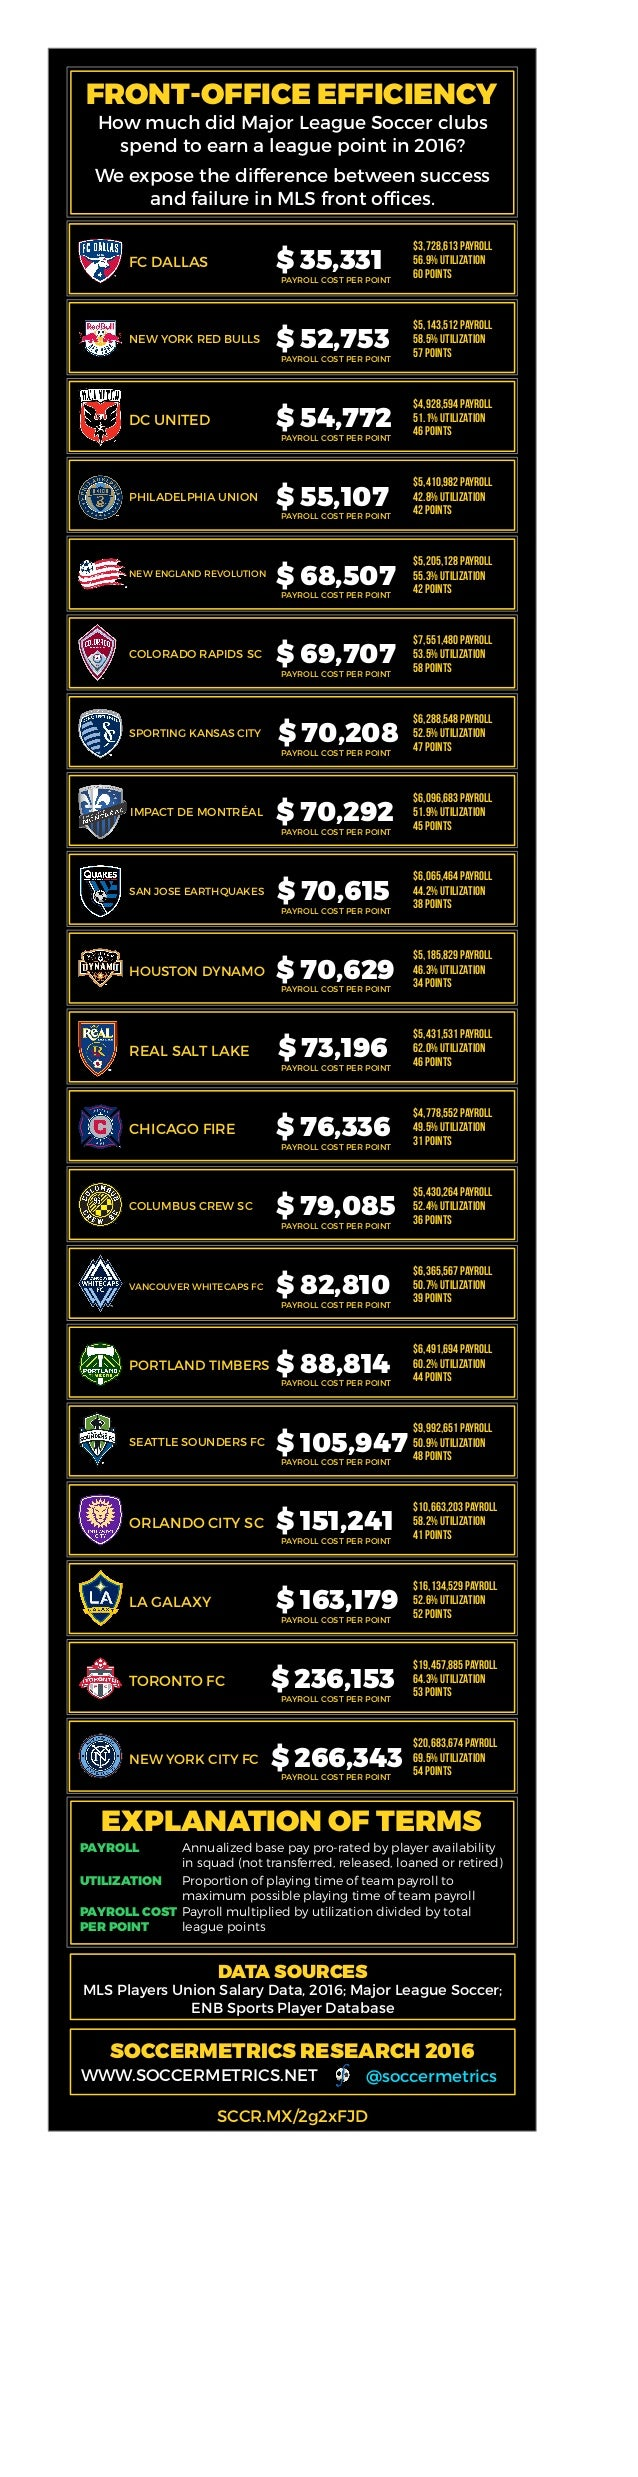 FRONT-OFFICE EFFICIENCY How much did Major League Soccer clubs spend to earn a league point in 2016? We expose the differe...